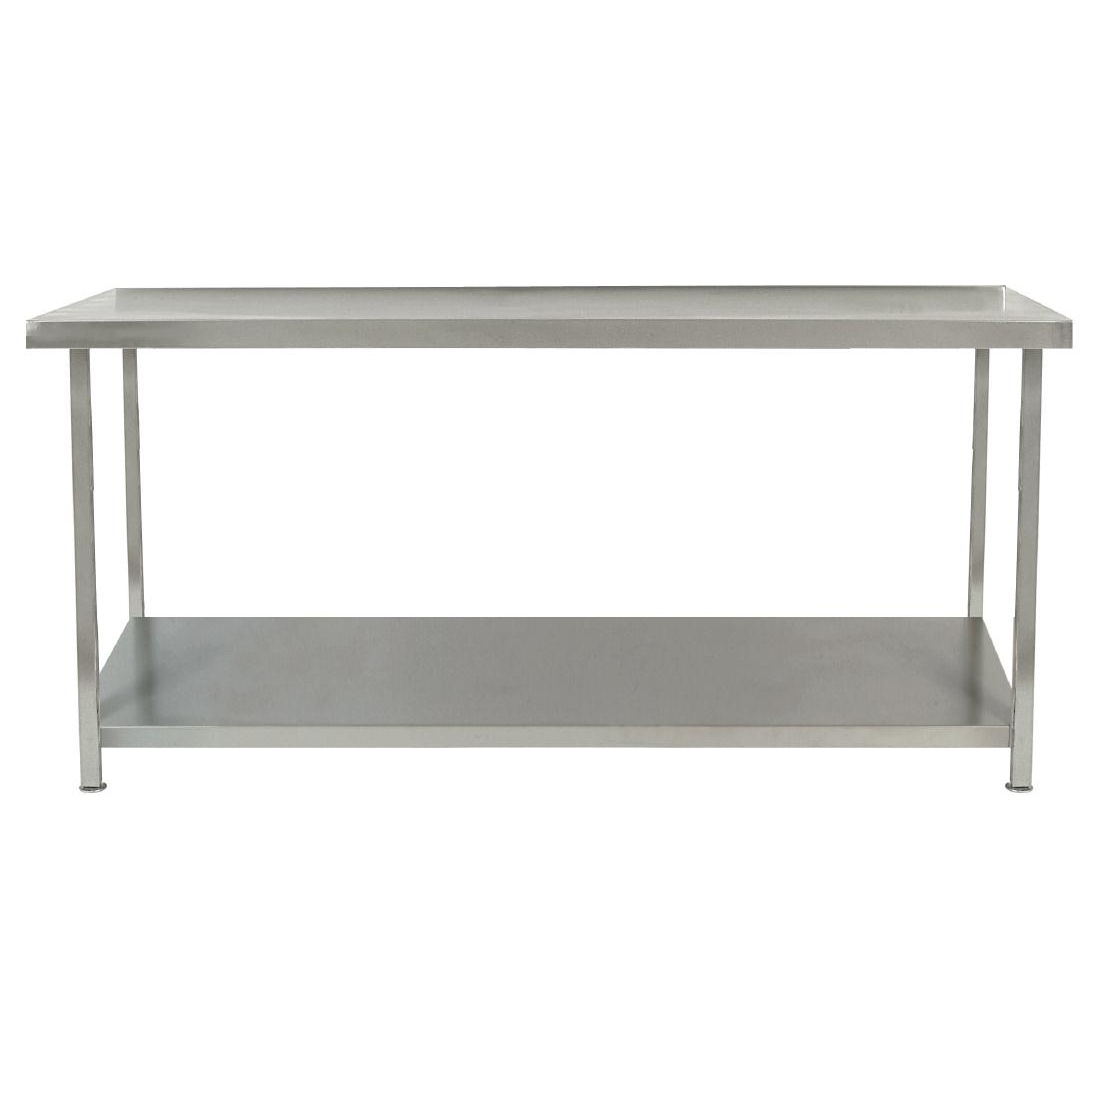 Parry Fully Welded Stainless Steel Centre Table with Undershelf 1800x600mm